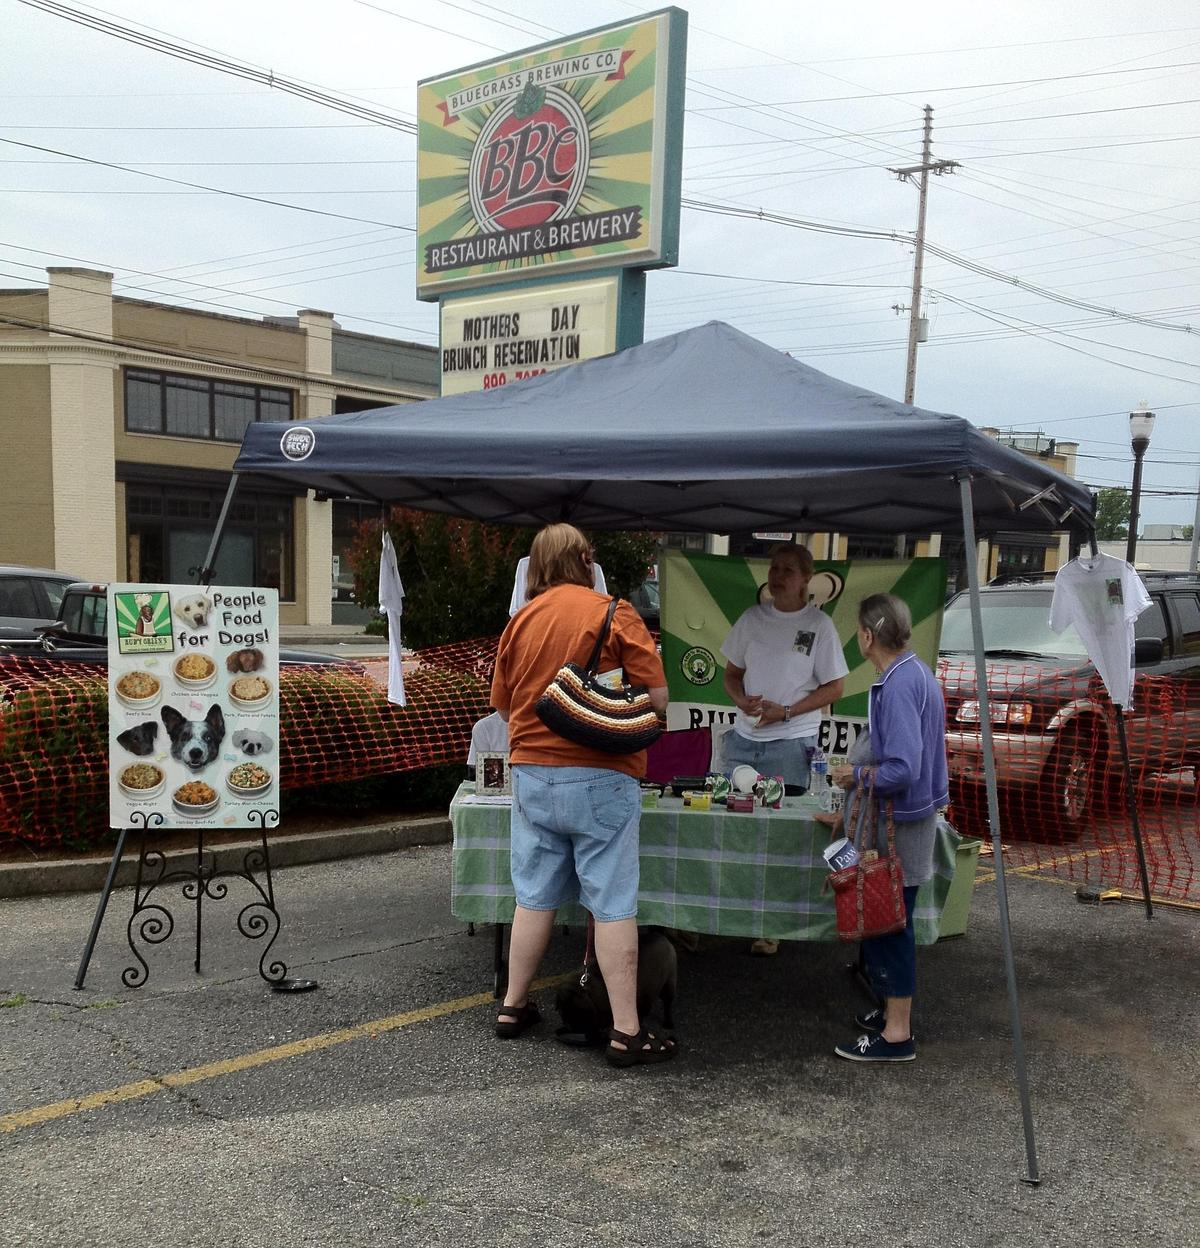 RUDY GREEN'S DOGGY CUISINE TENT